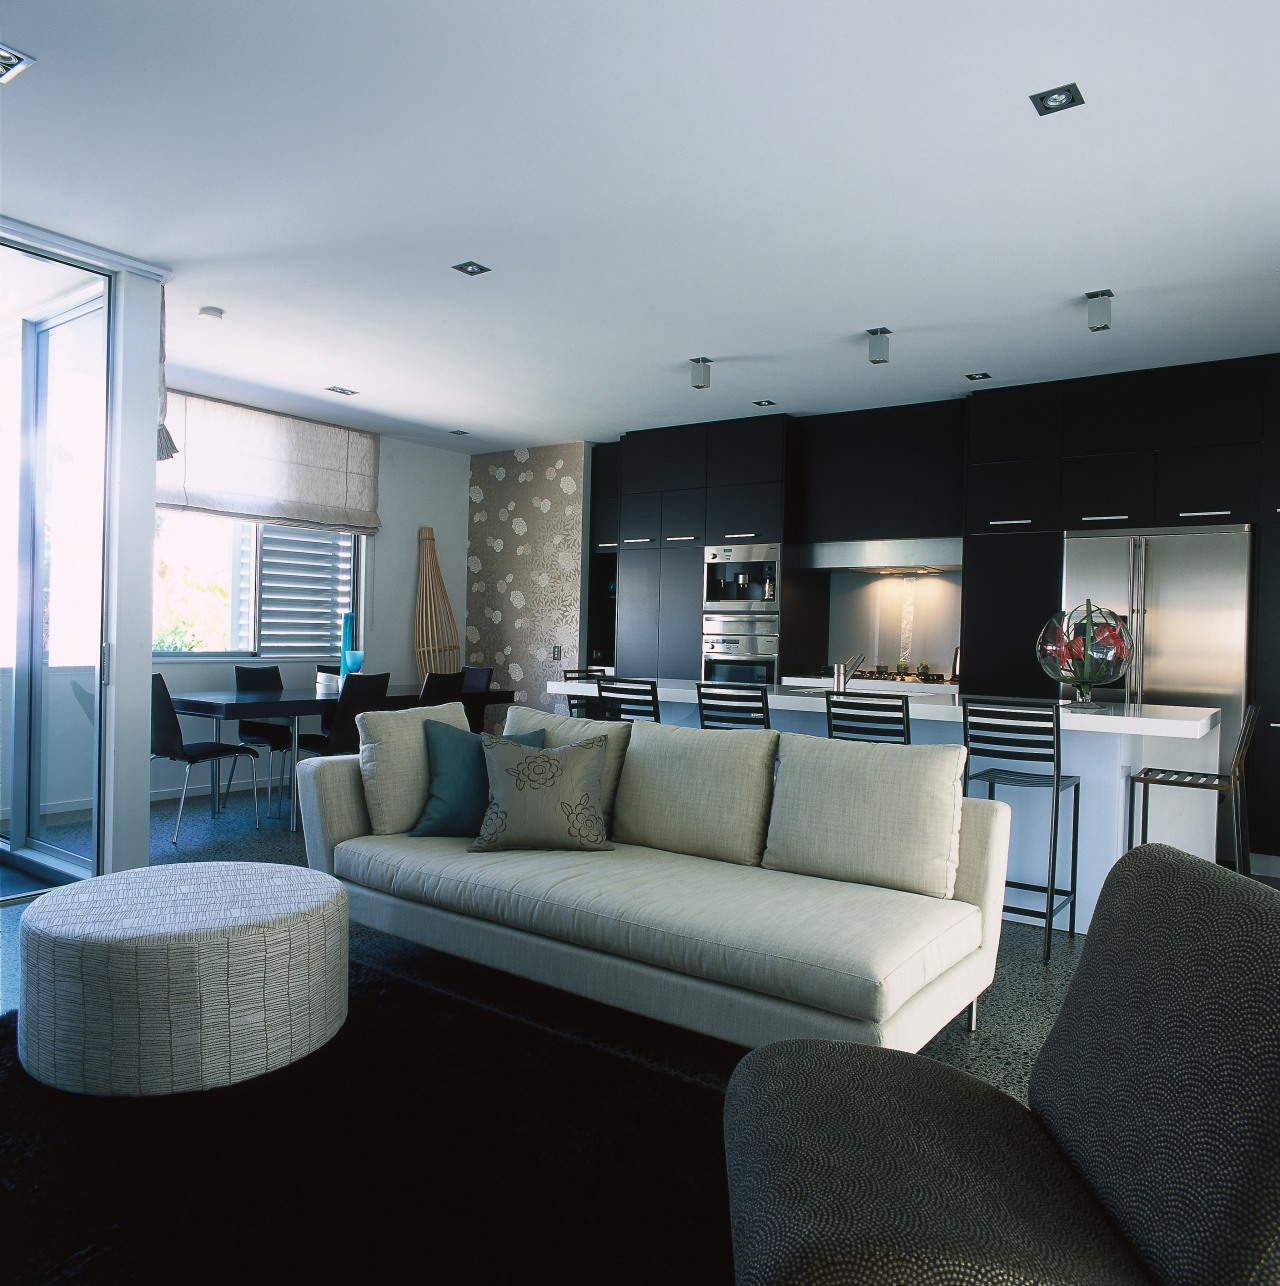 View of the living area apartment, architecture, interior design, living room, property, real estate, room, gray, black